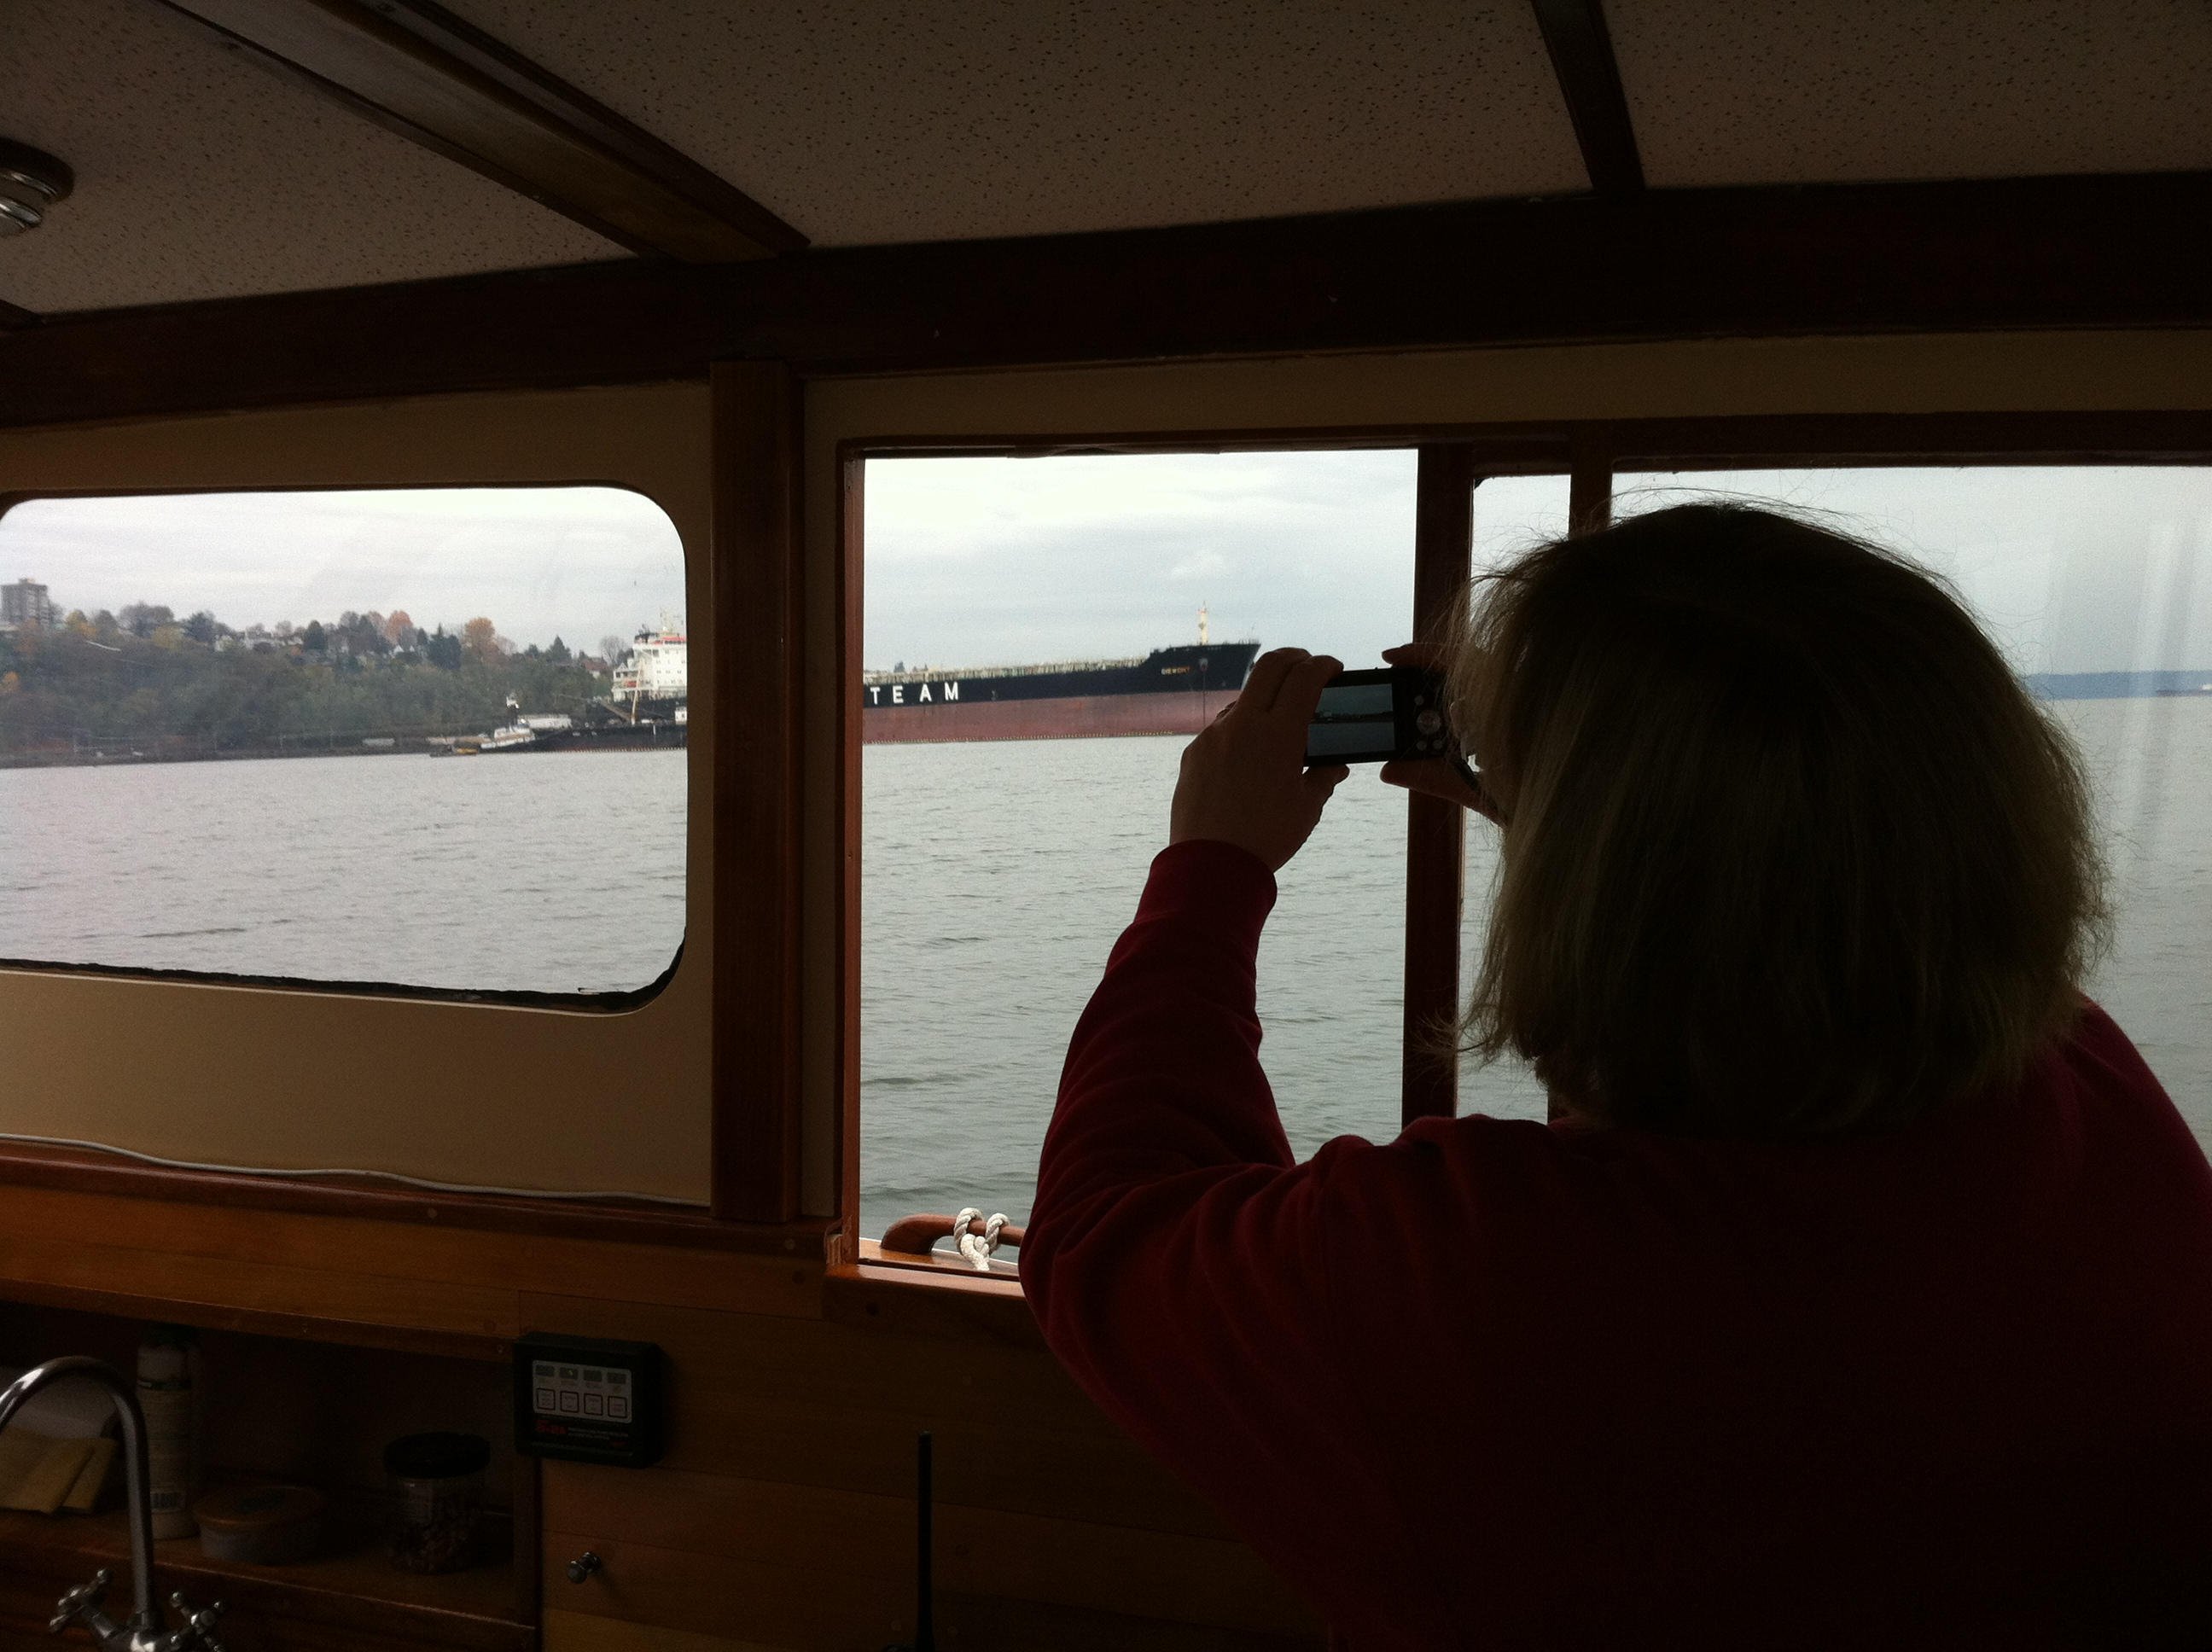 We go for a cruise on the Monk, Renee takes photos of a Polish grain freighter with her new camera